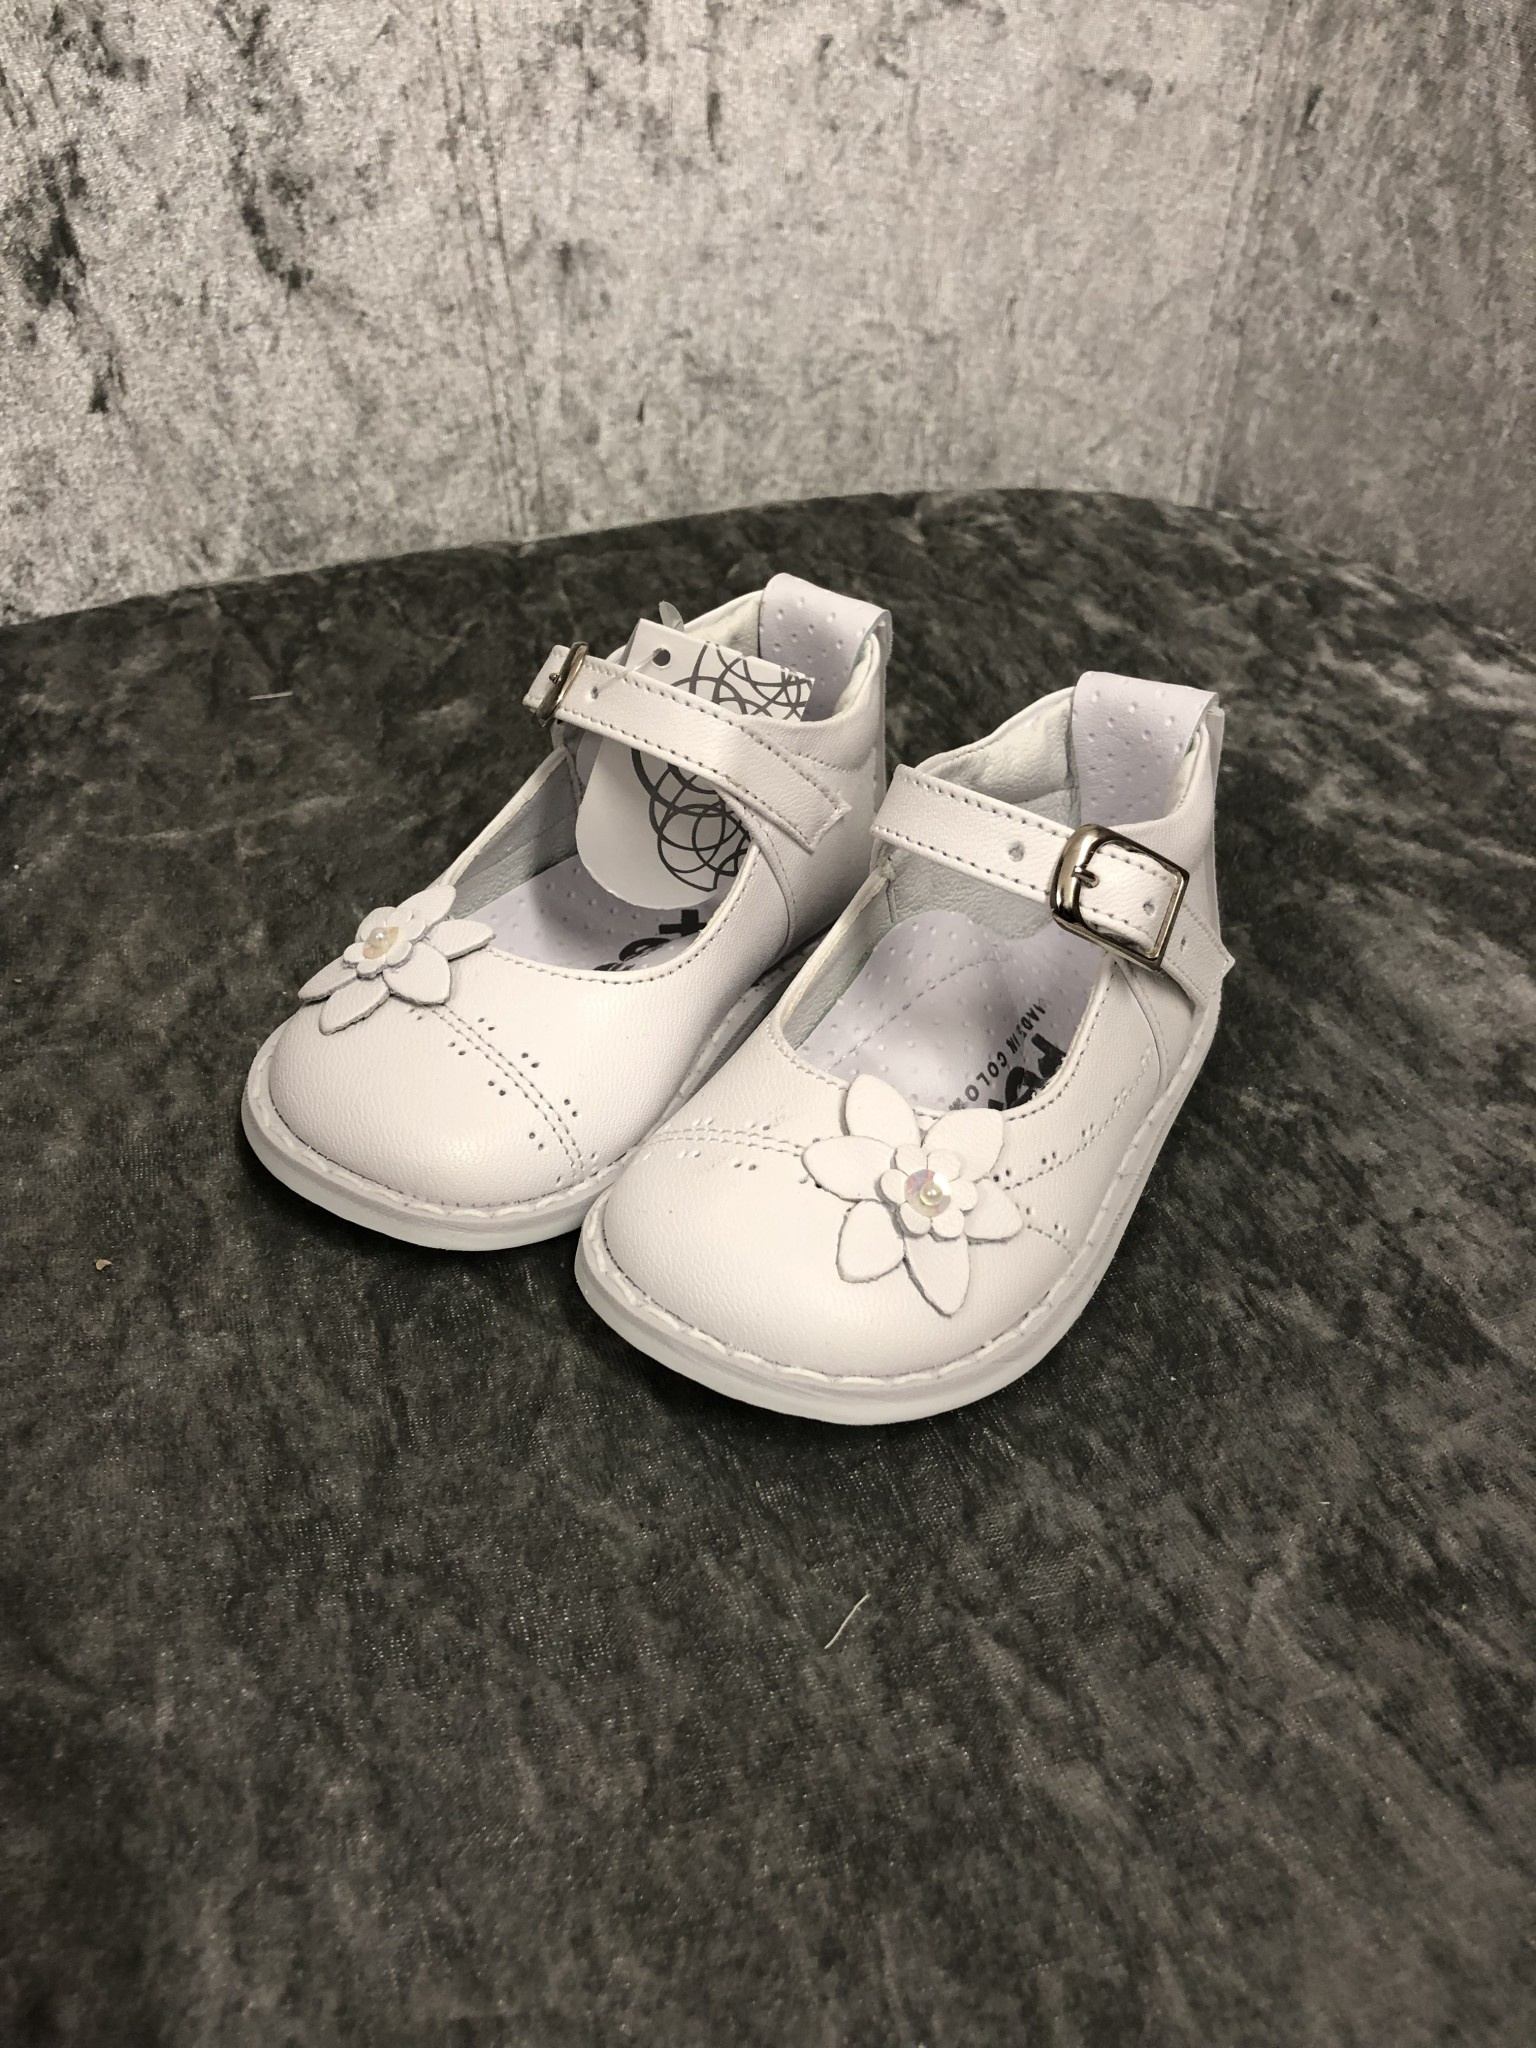 Pex Pex Meryl Girls Shoe With Flower Detail